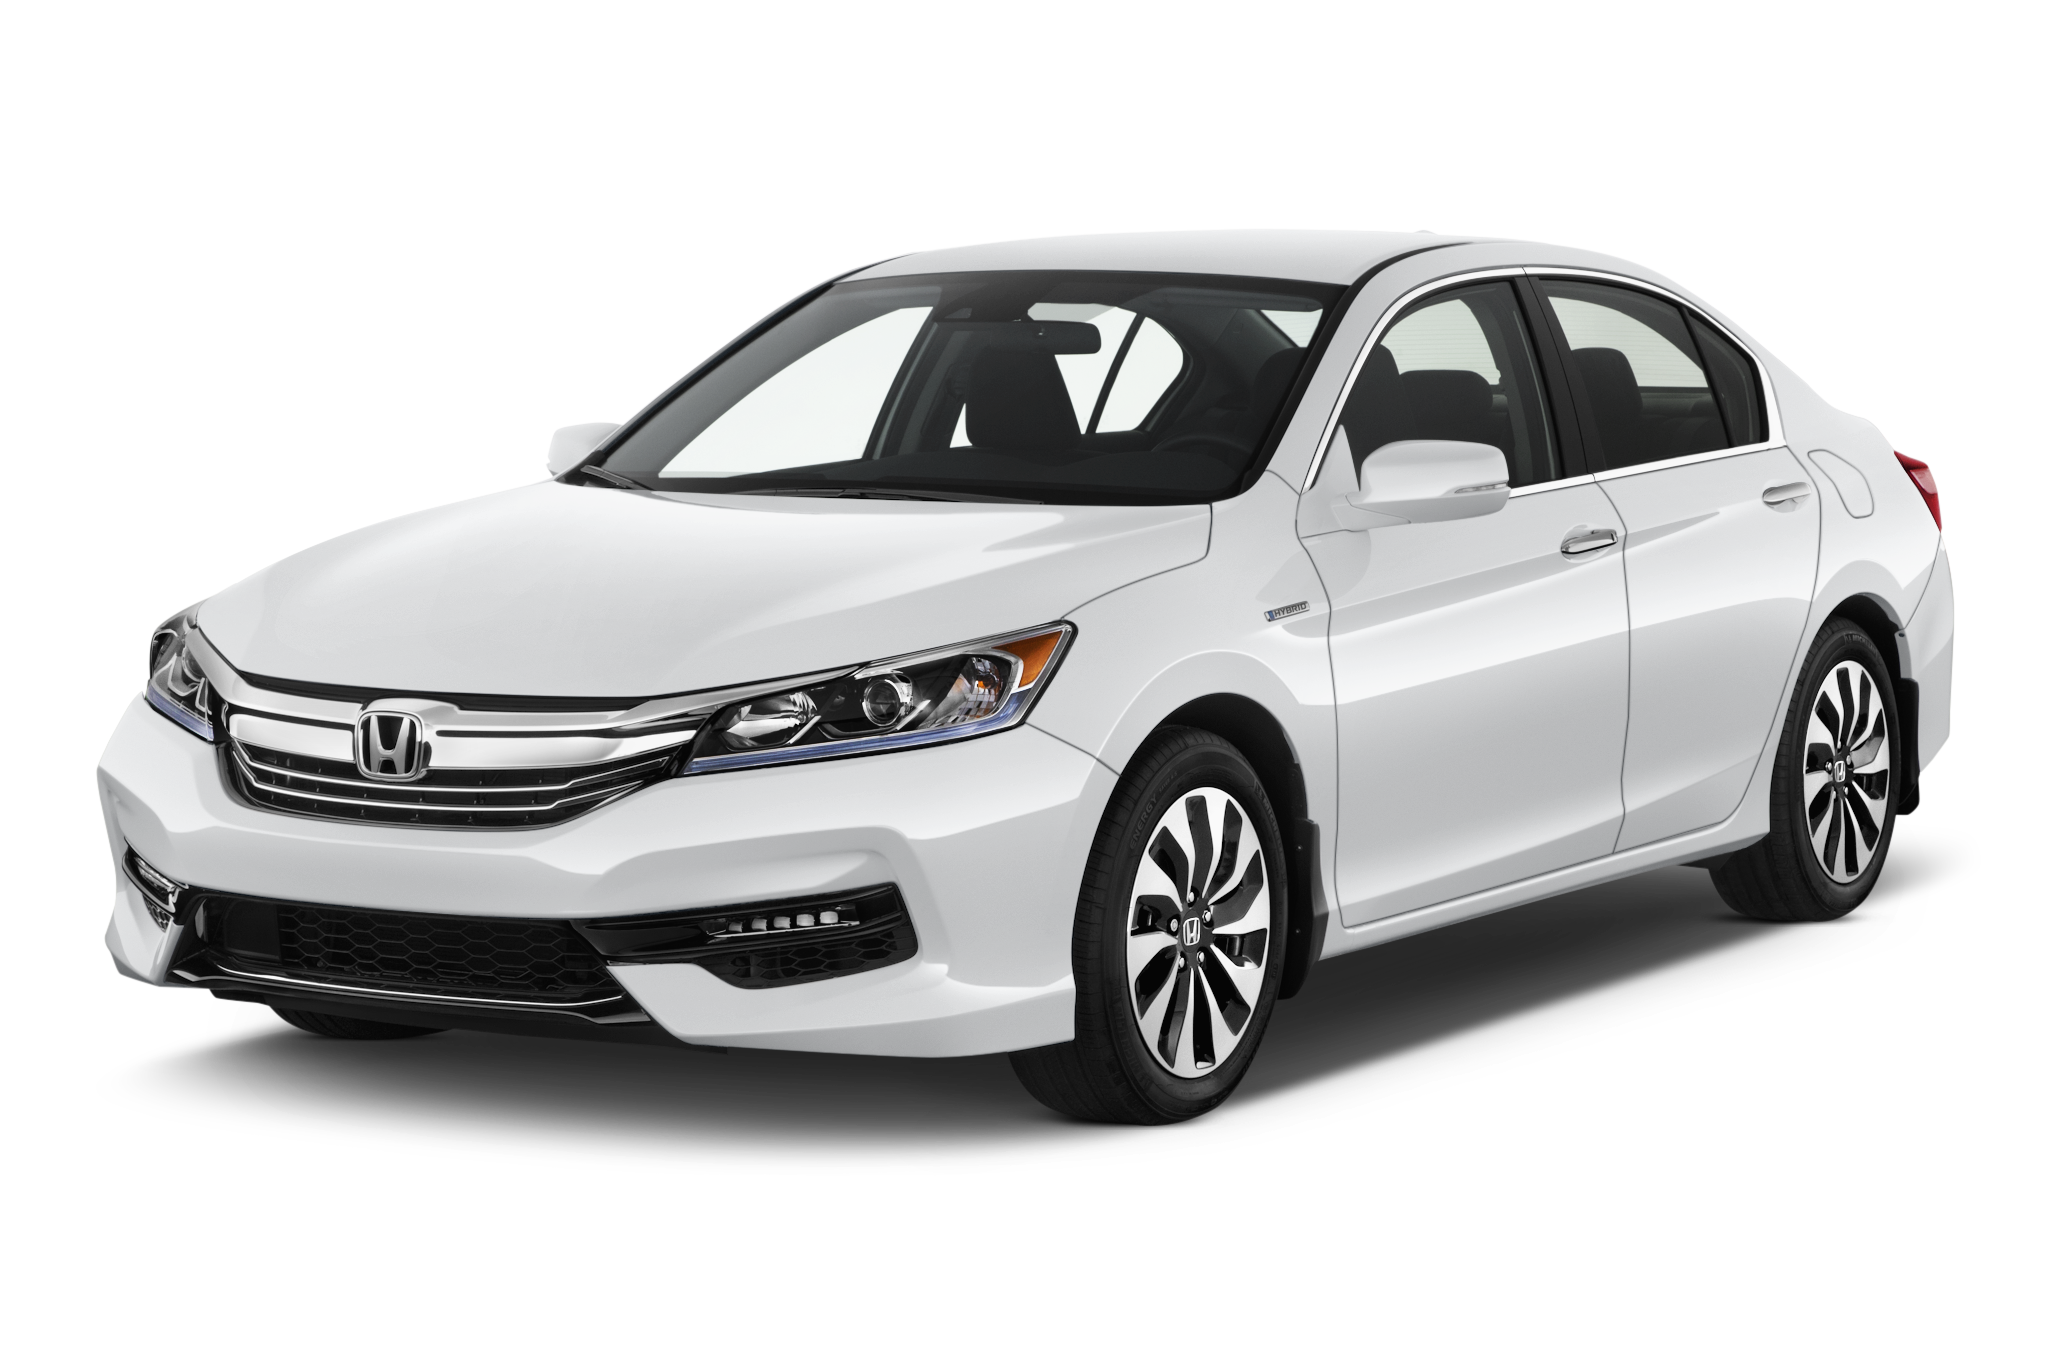 Honda Accord (12-)